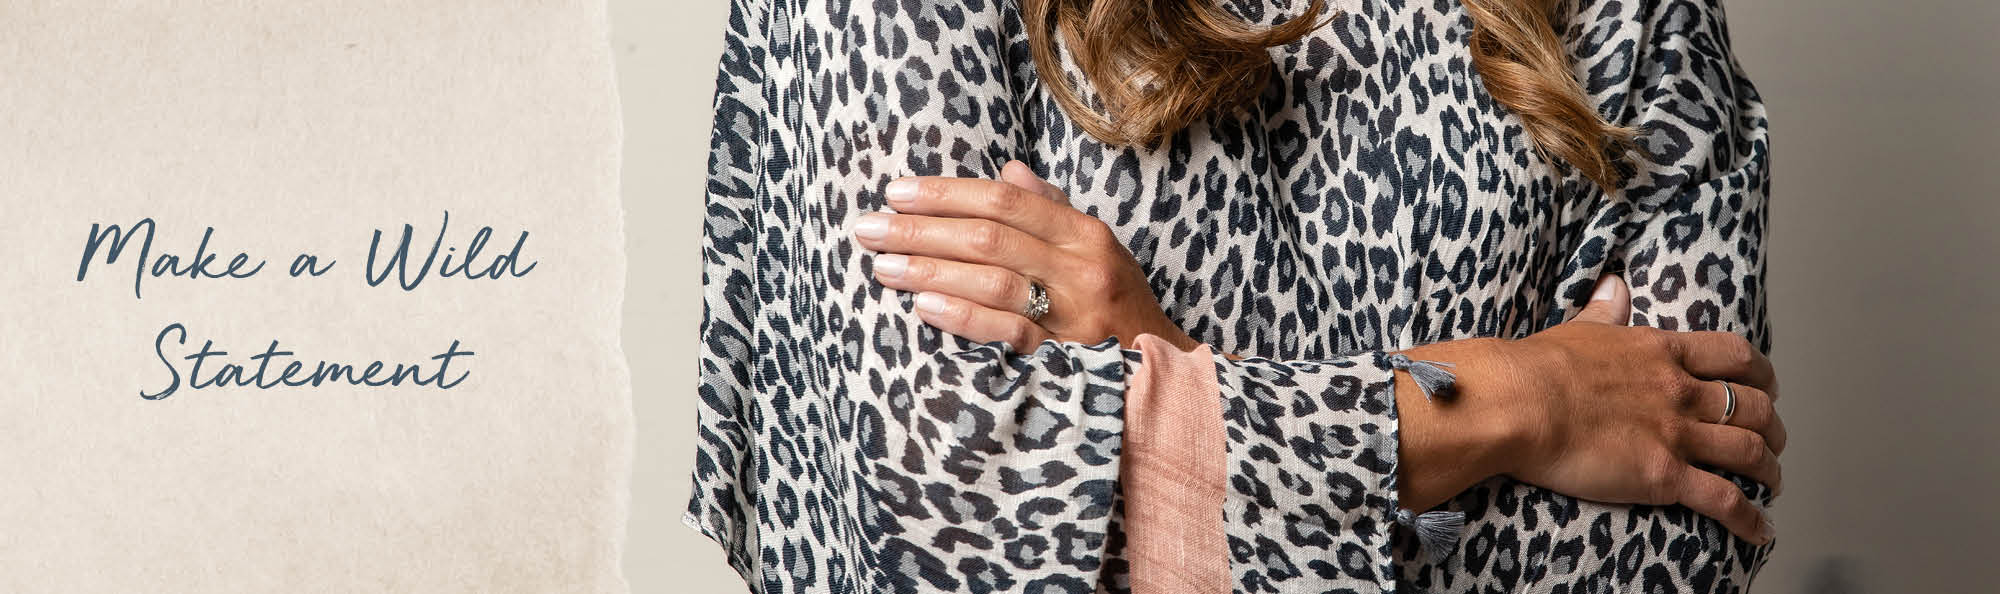 Make a wild statement. Woman wearing an animal print poncho.